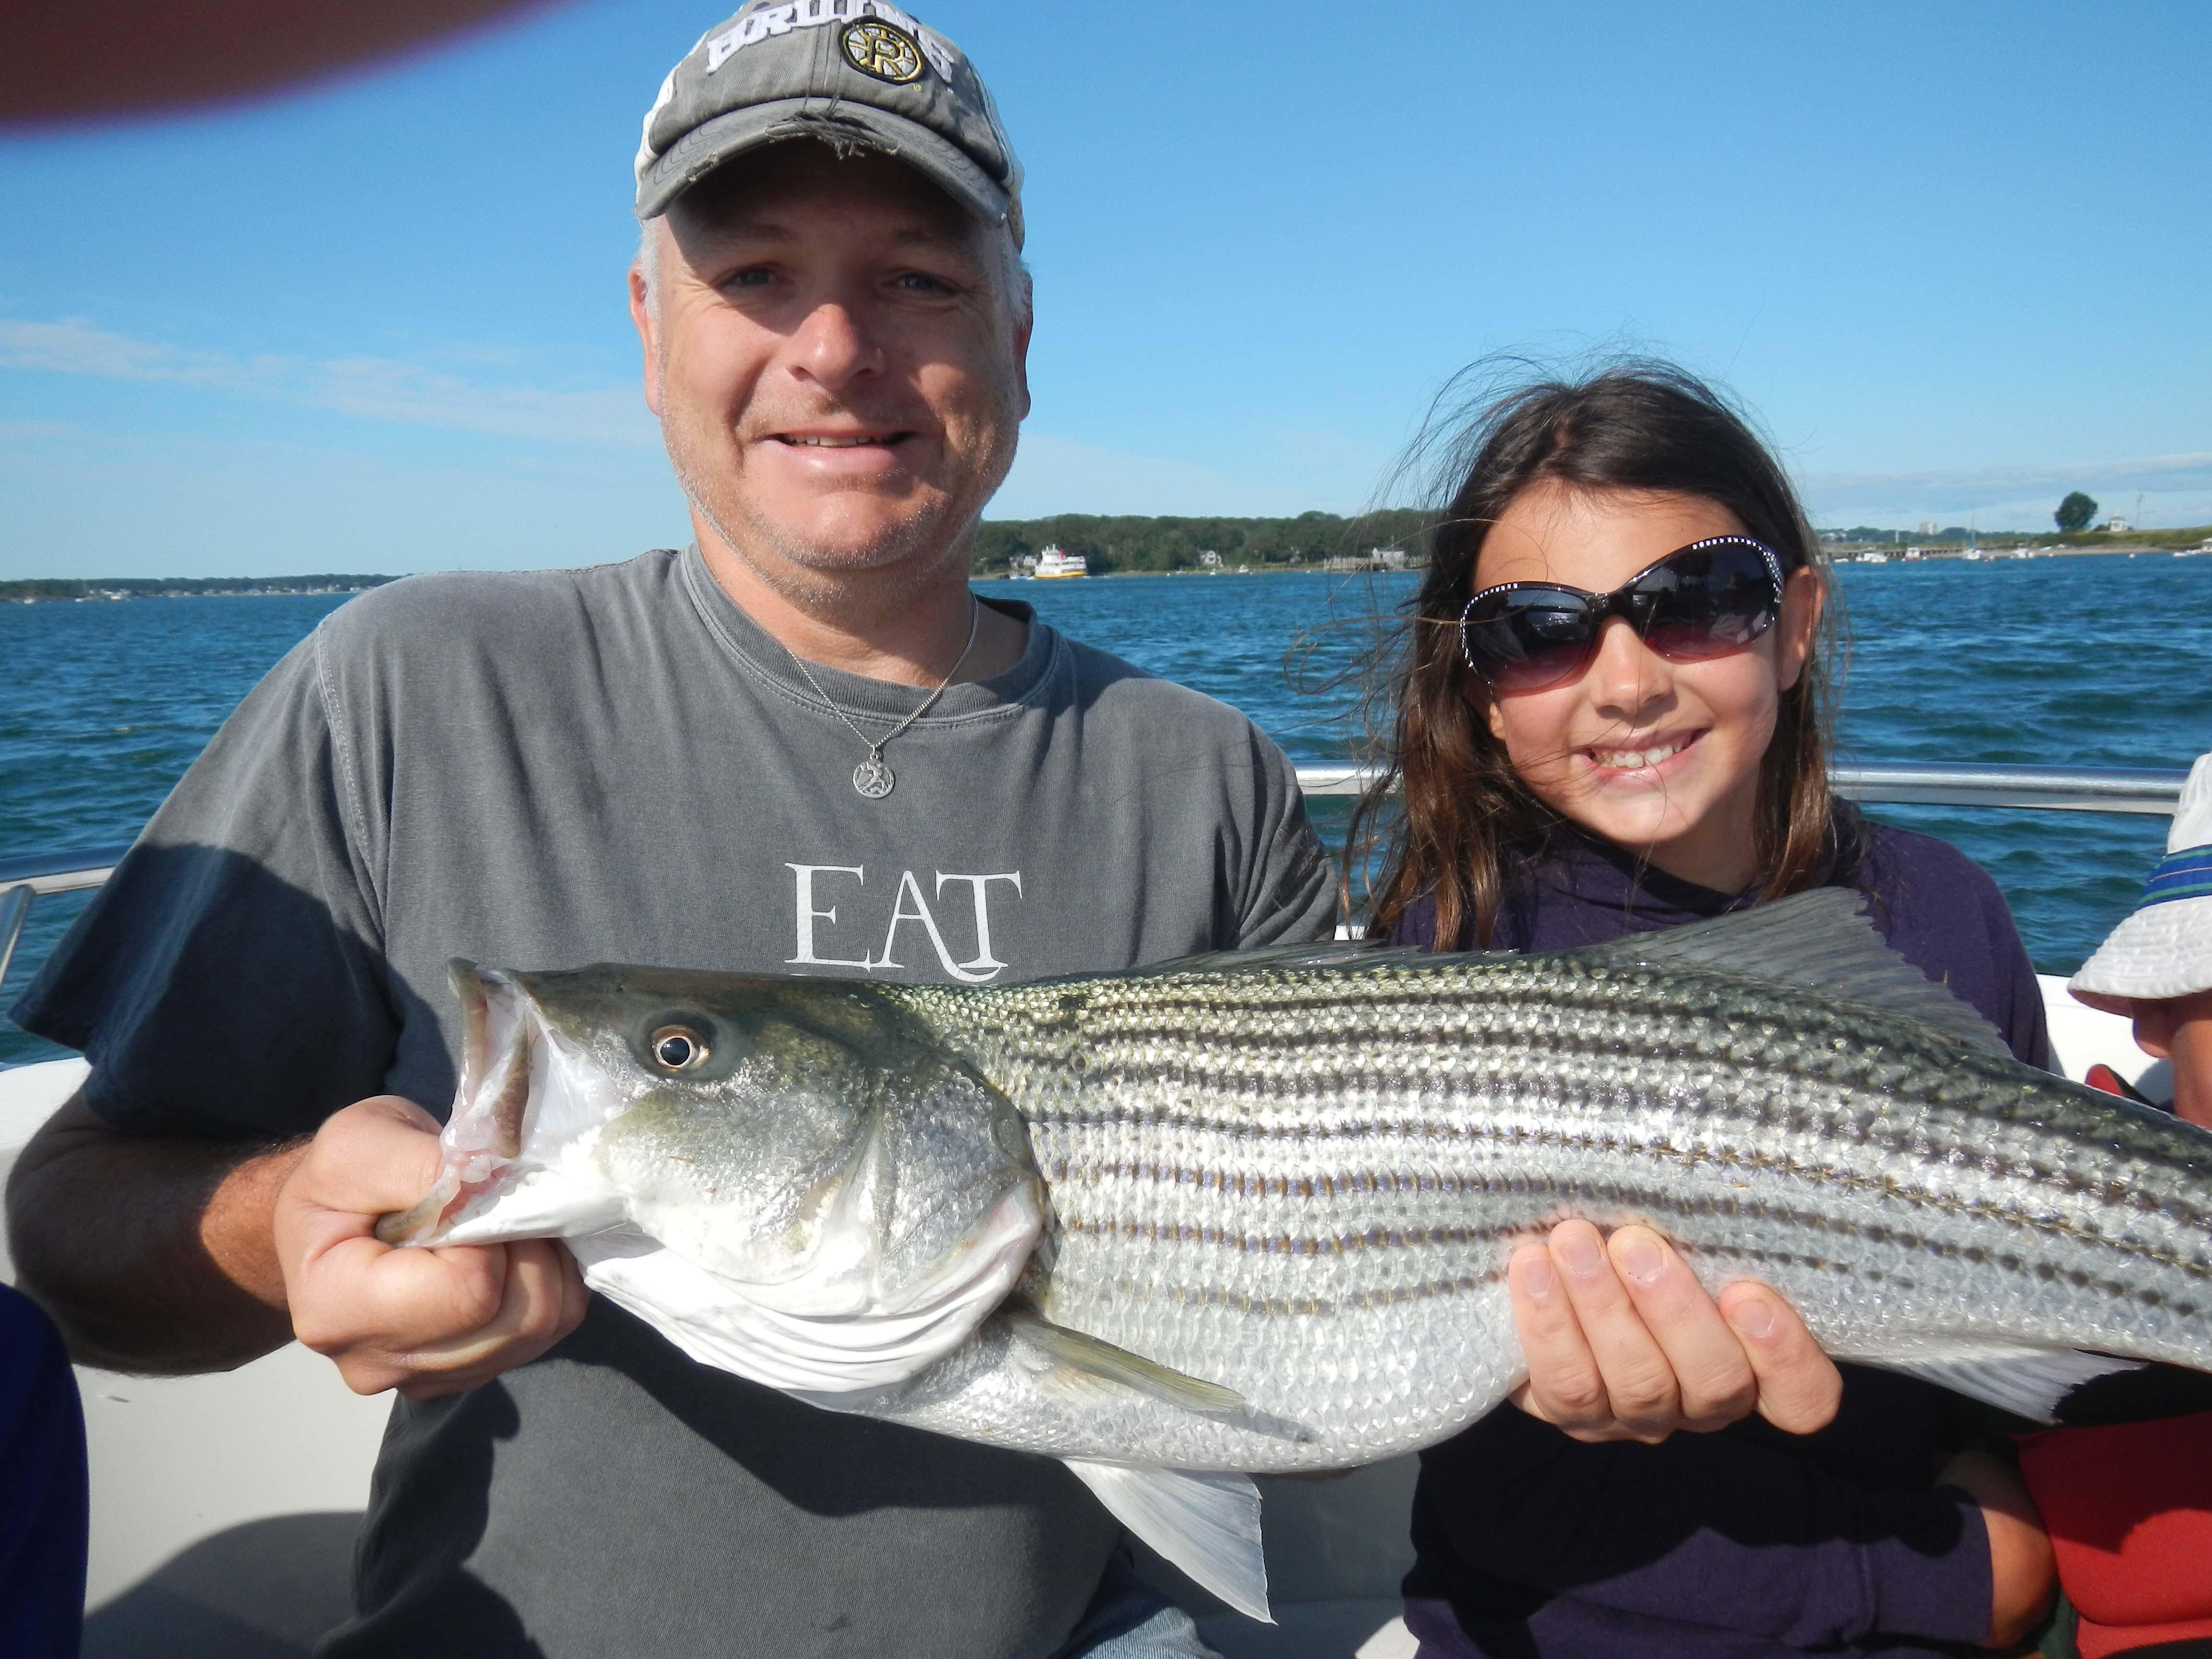 Go fish charters south portland maine me for Portland maine fishing charters